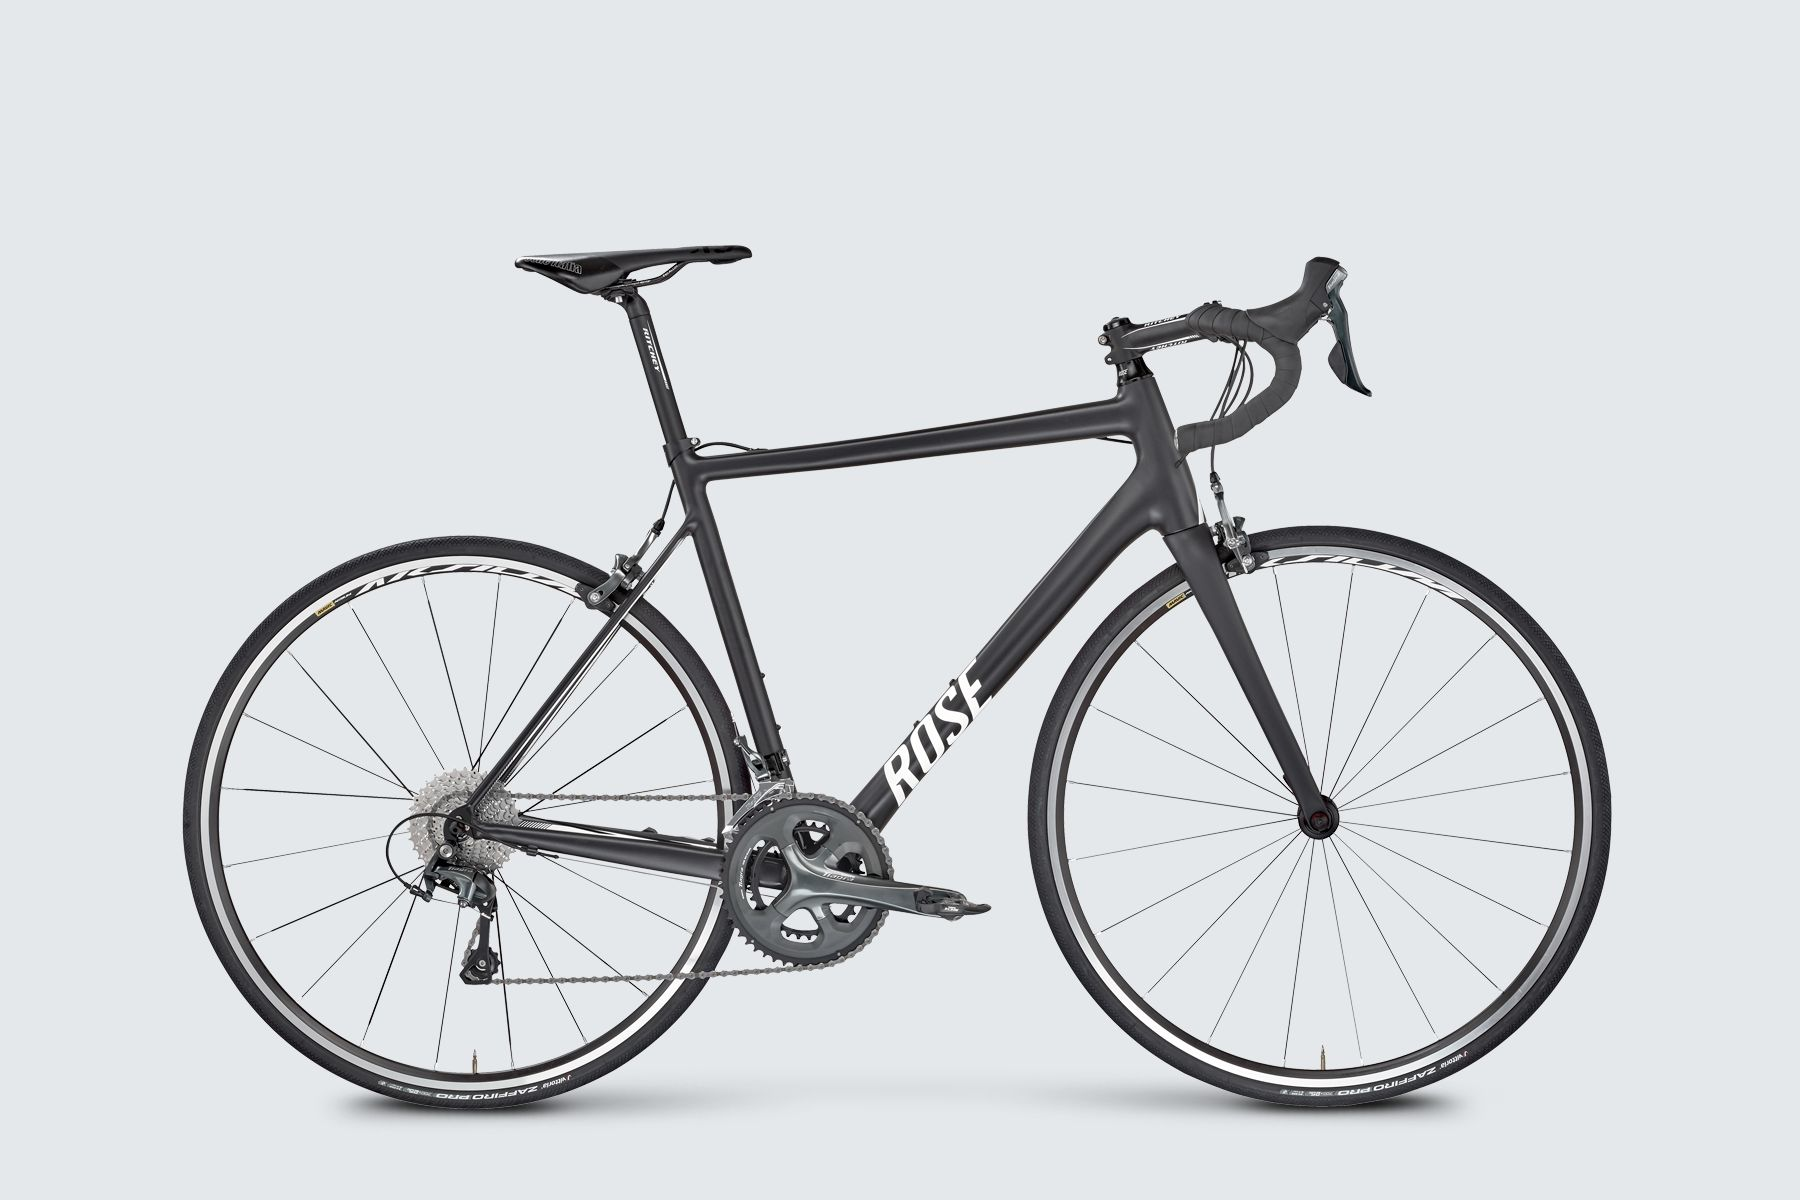 PRO SL Tiagra BIKE NOW!